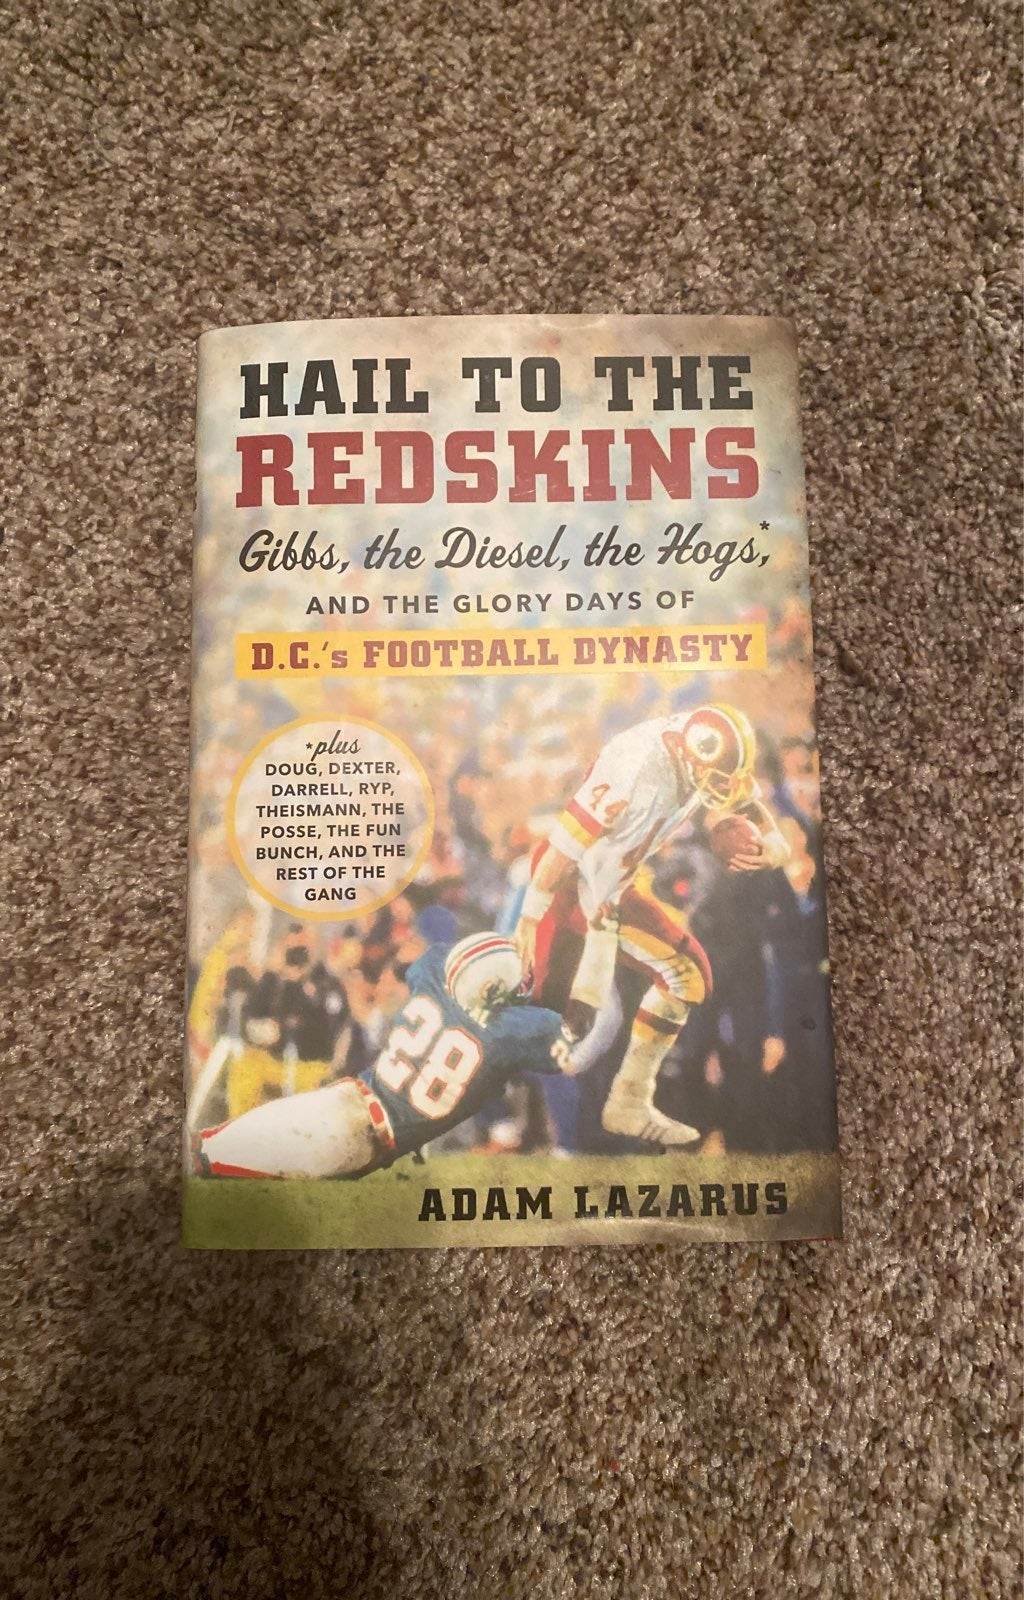 Hail To The Redskins book